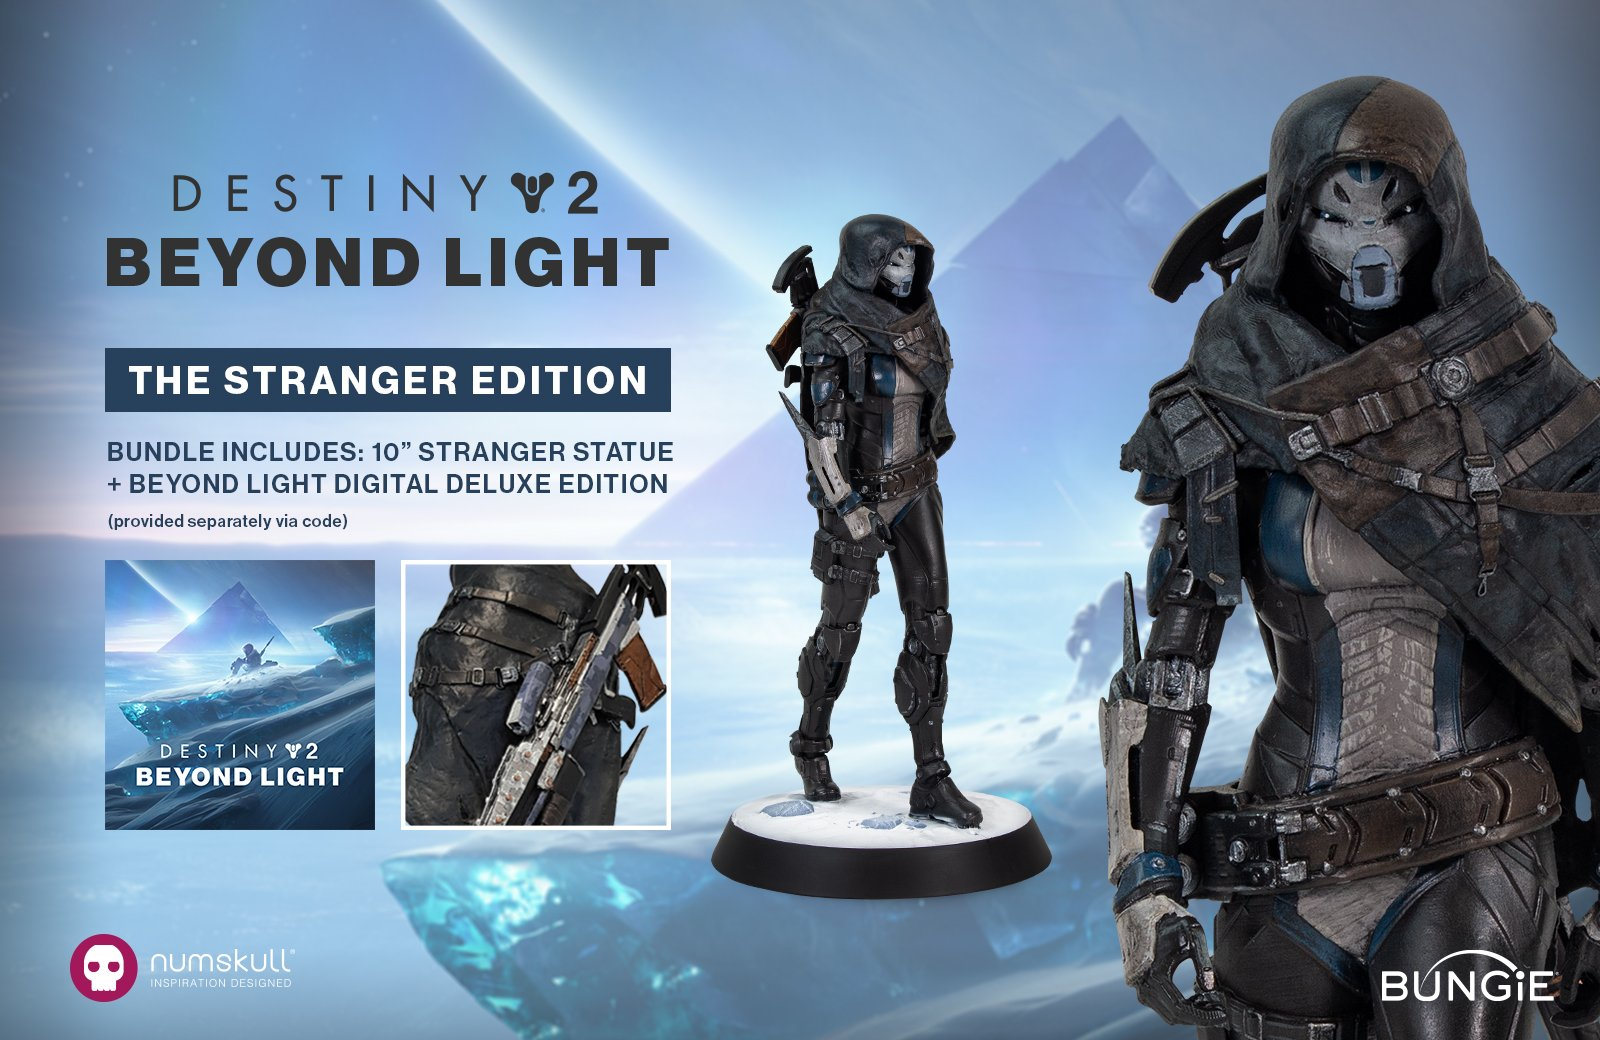 Destiny 2 Beyond Light: The Stranger Edition